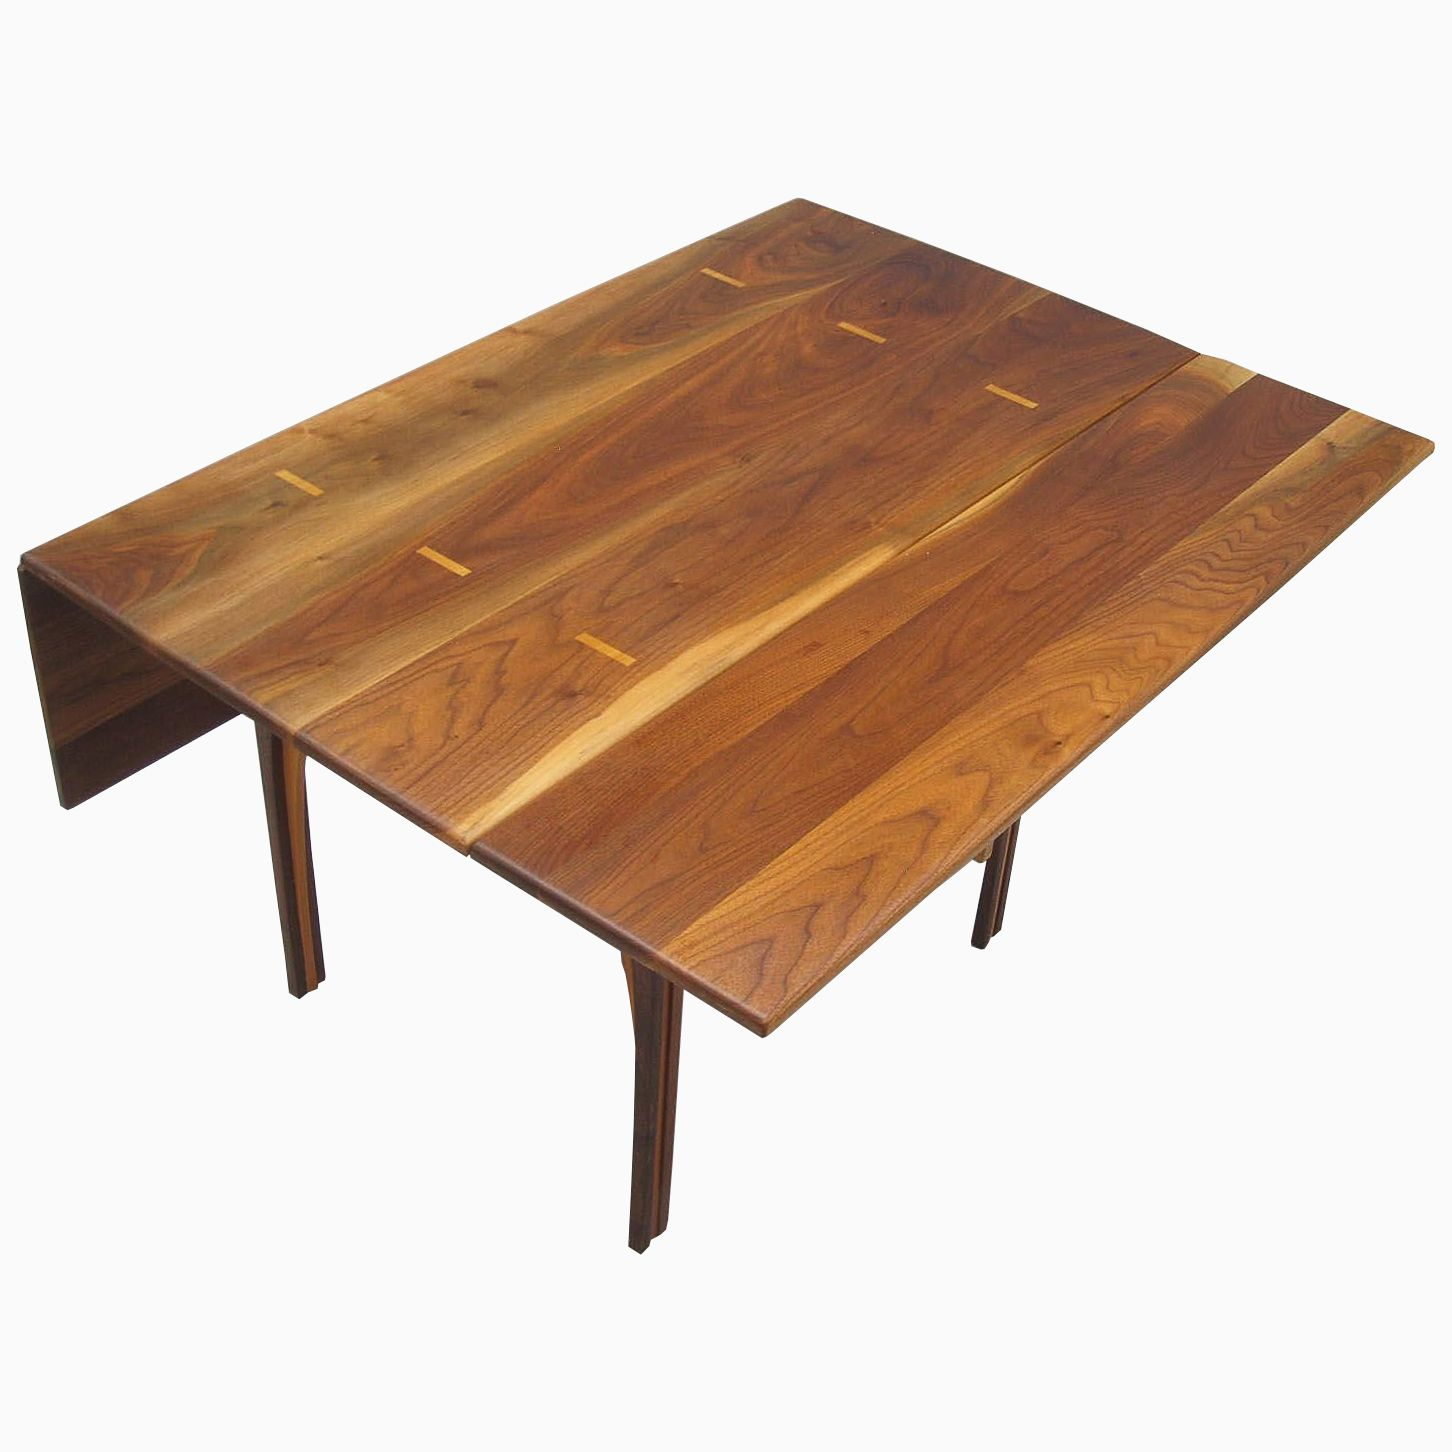 Walnut Kitchen Table: Buy A Custom Solid Walnut Drop Leaf Table, Made To Order